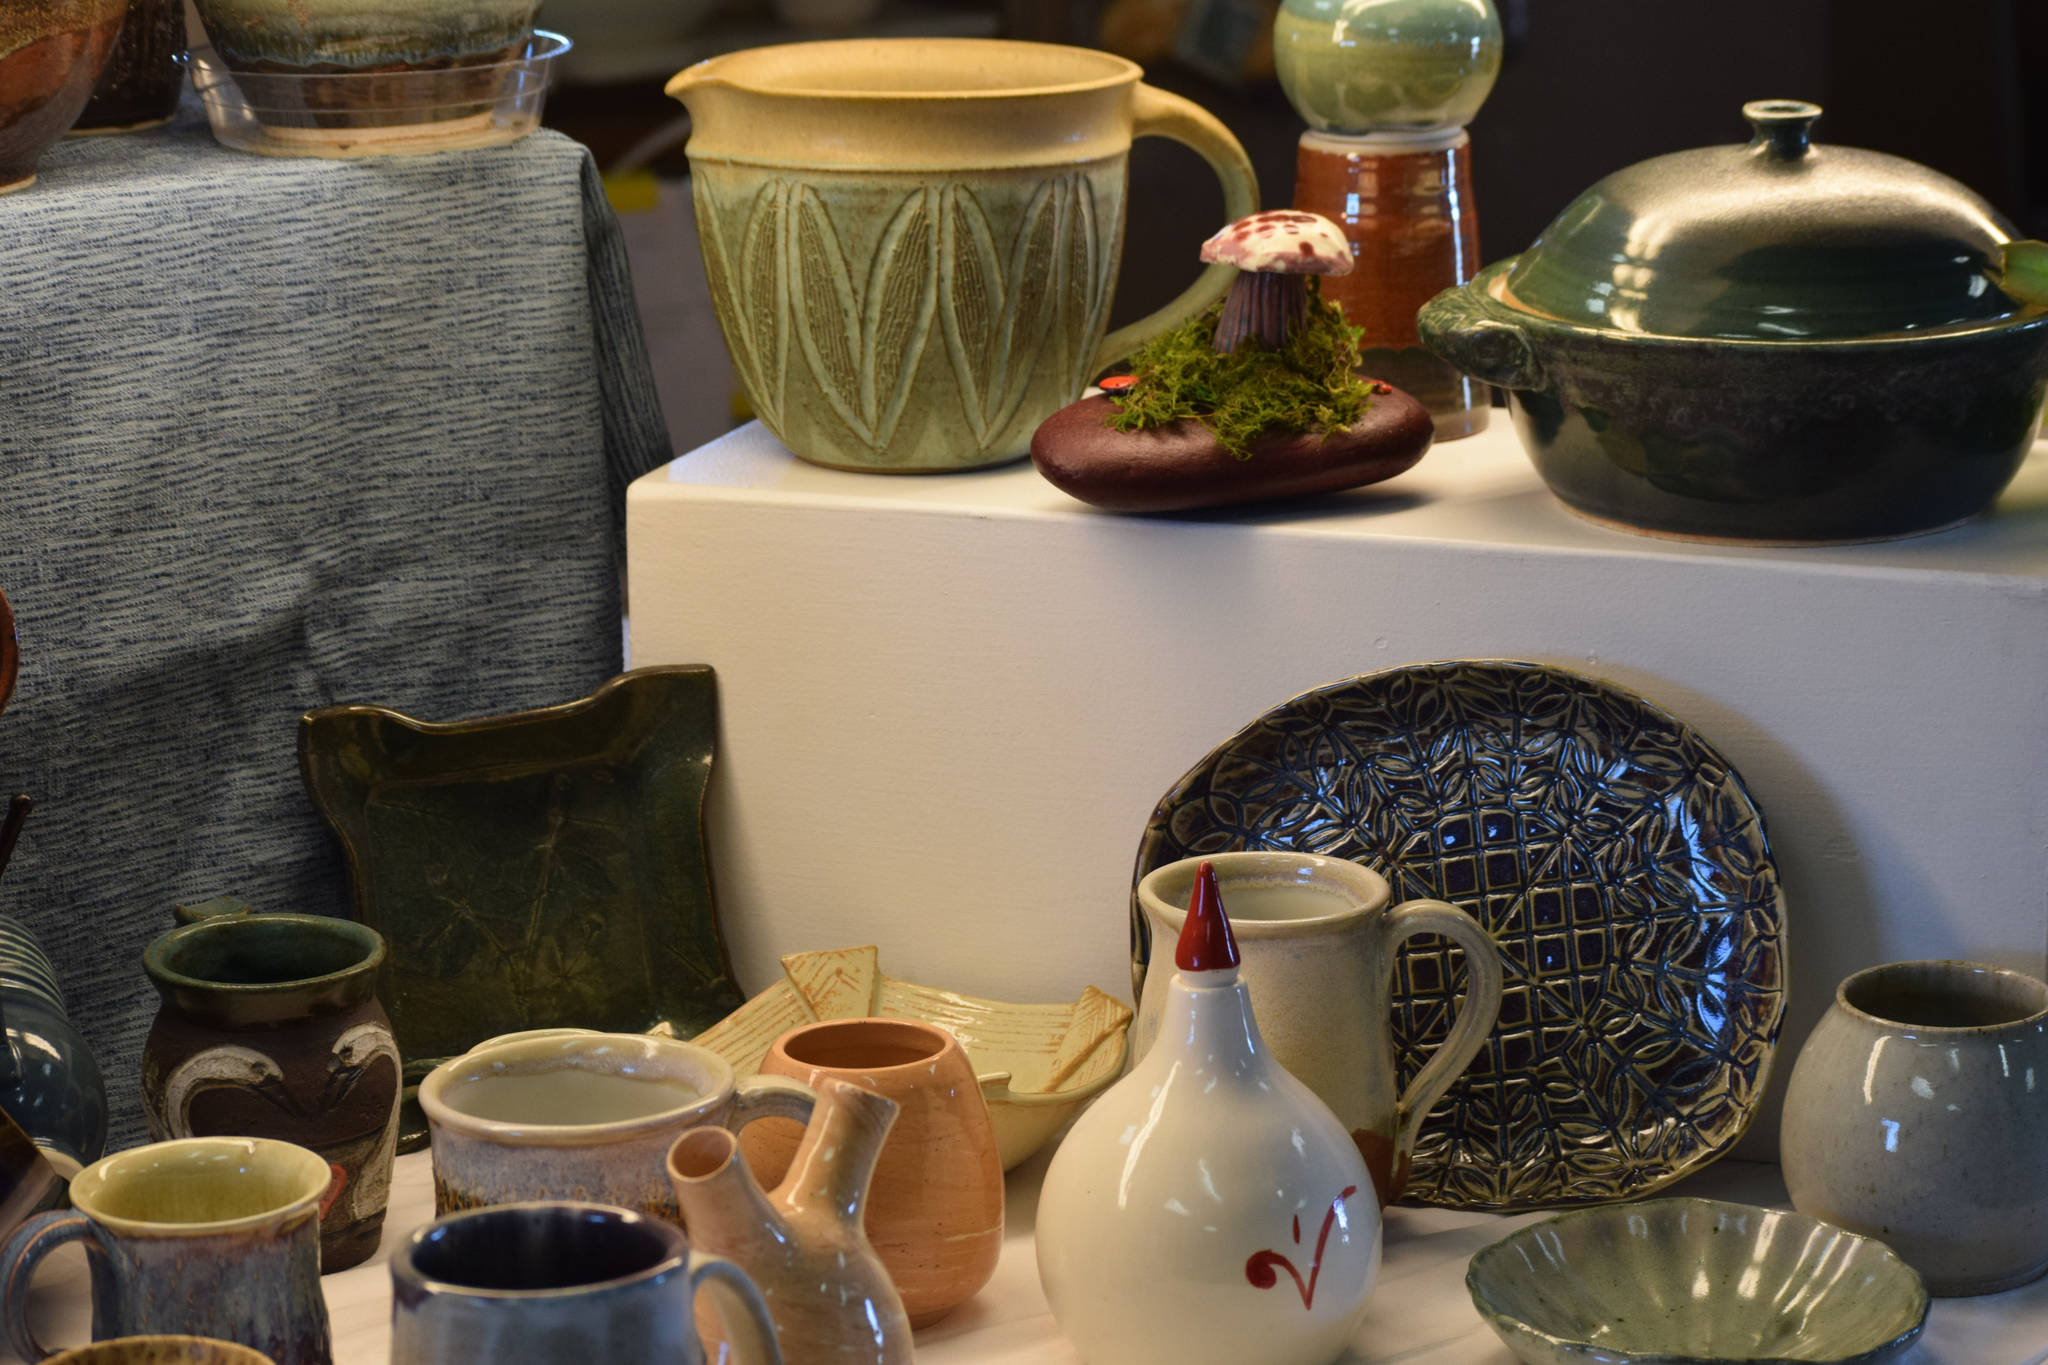 Handmade ceramics are on display at the Kenai Potters Guild on Tuesday, April 27, 2021. Camille Botello / Peninsula Clarion